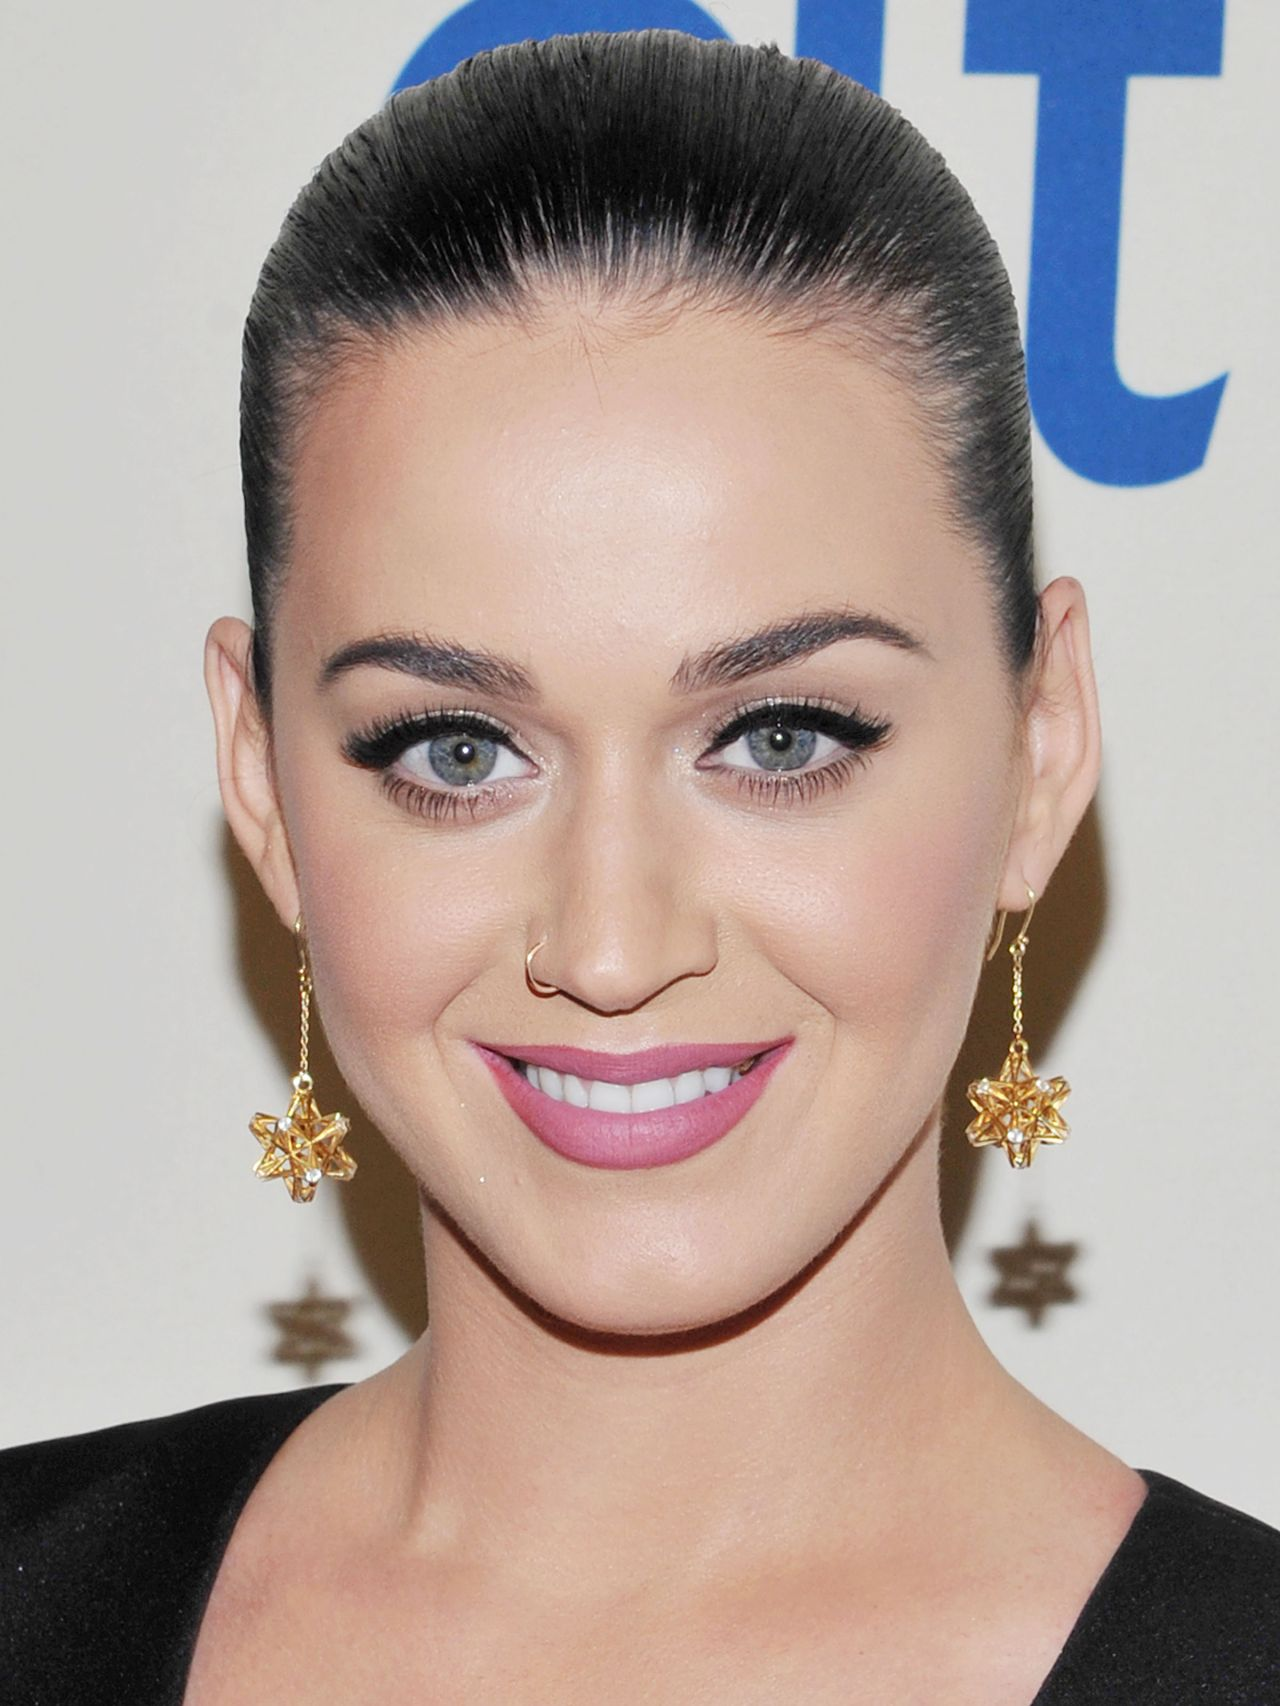 katy perry - photo #40